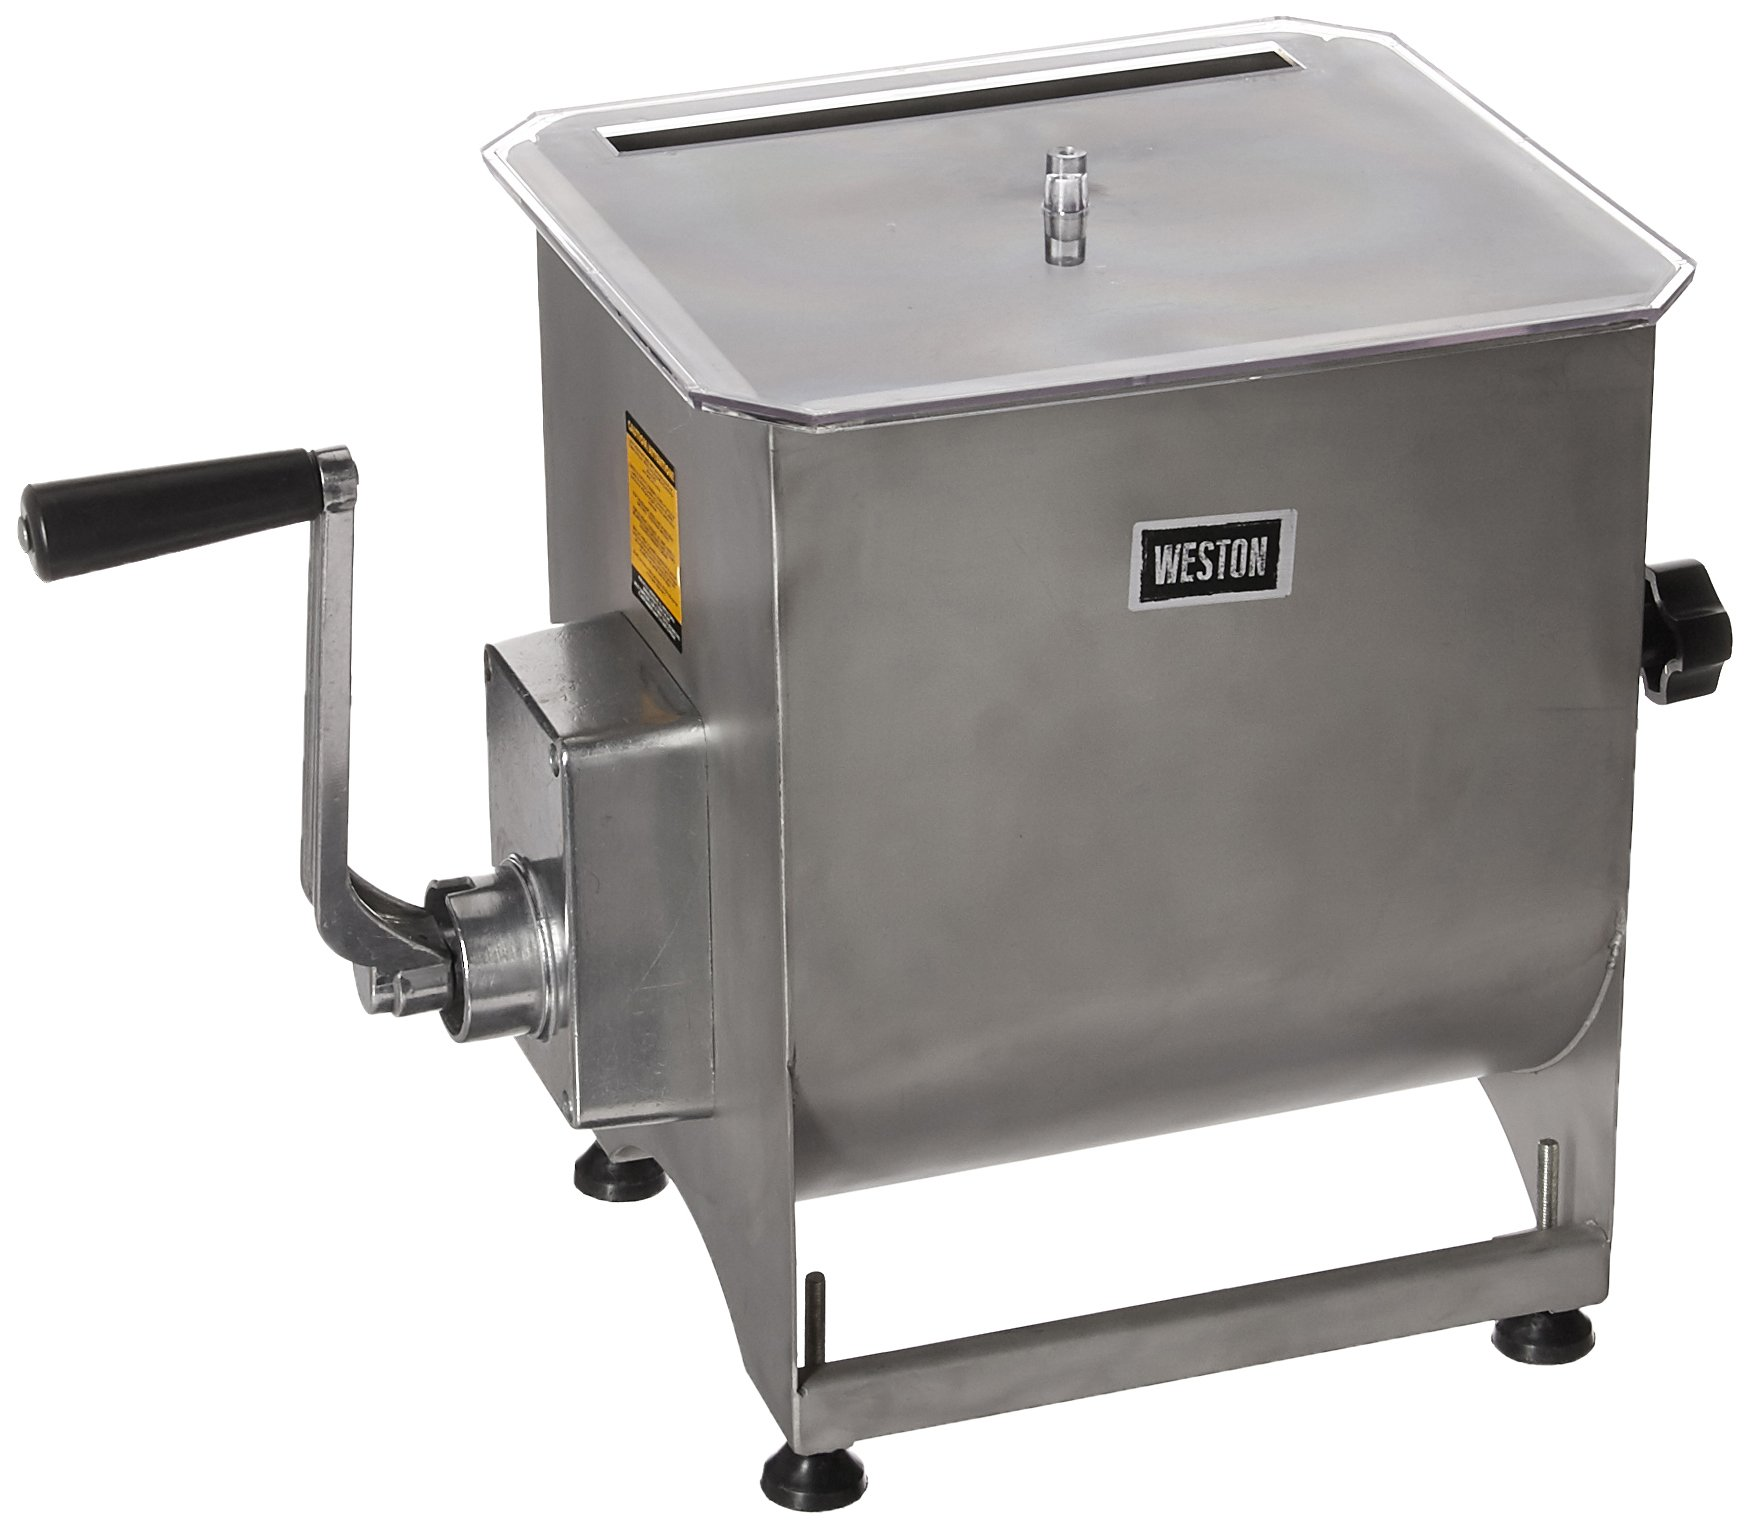 Weston Stainless Steel Meat Mixer, 44-Pound Capacity (36-2001-W), Removable Mixing Paddles by Weston